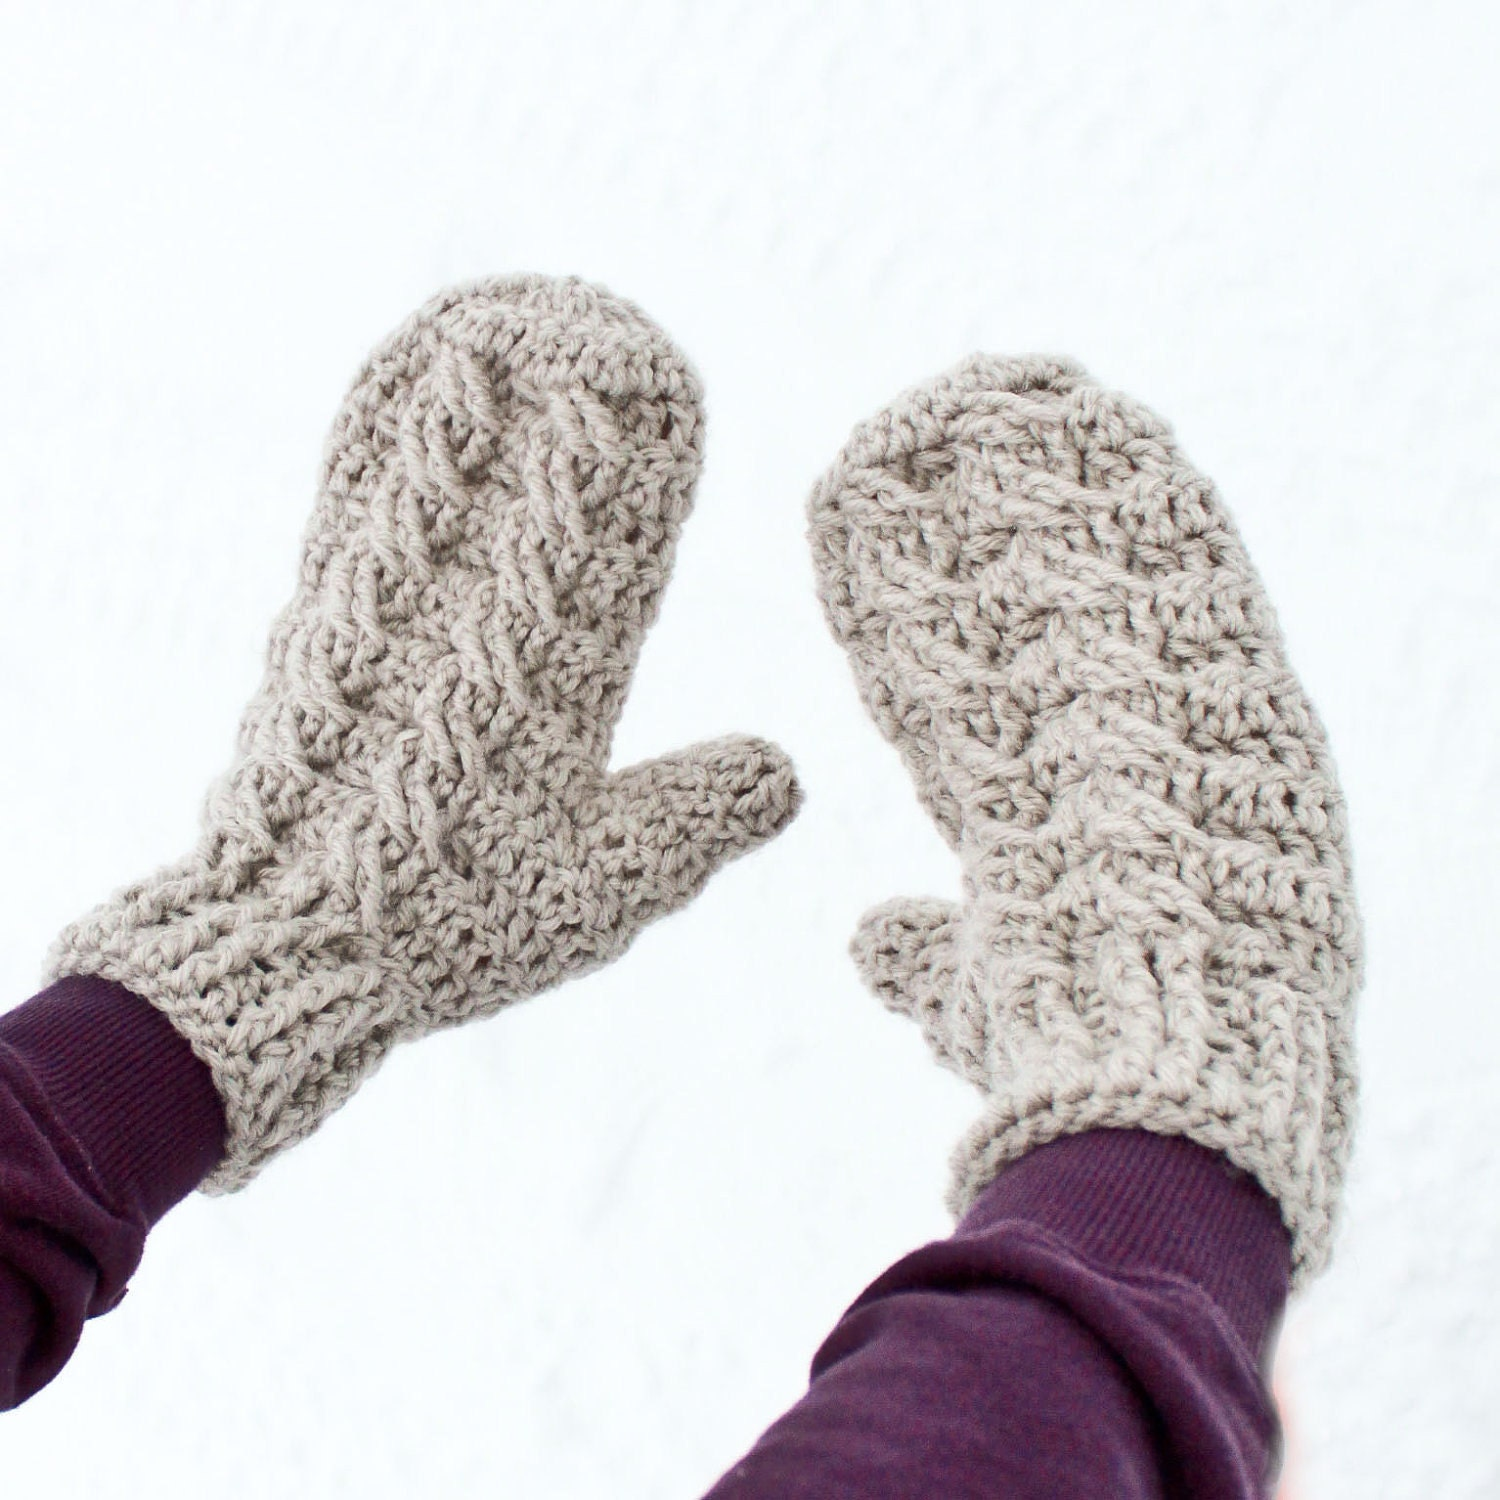 Crochet Mitten Pattern : Instant Download Crochet Pattern Cable Mittens and by Mamachee